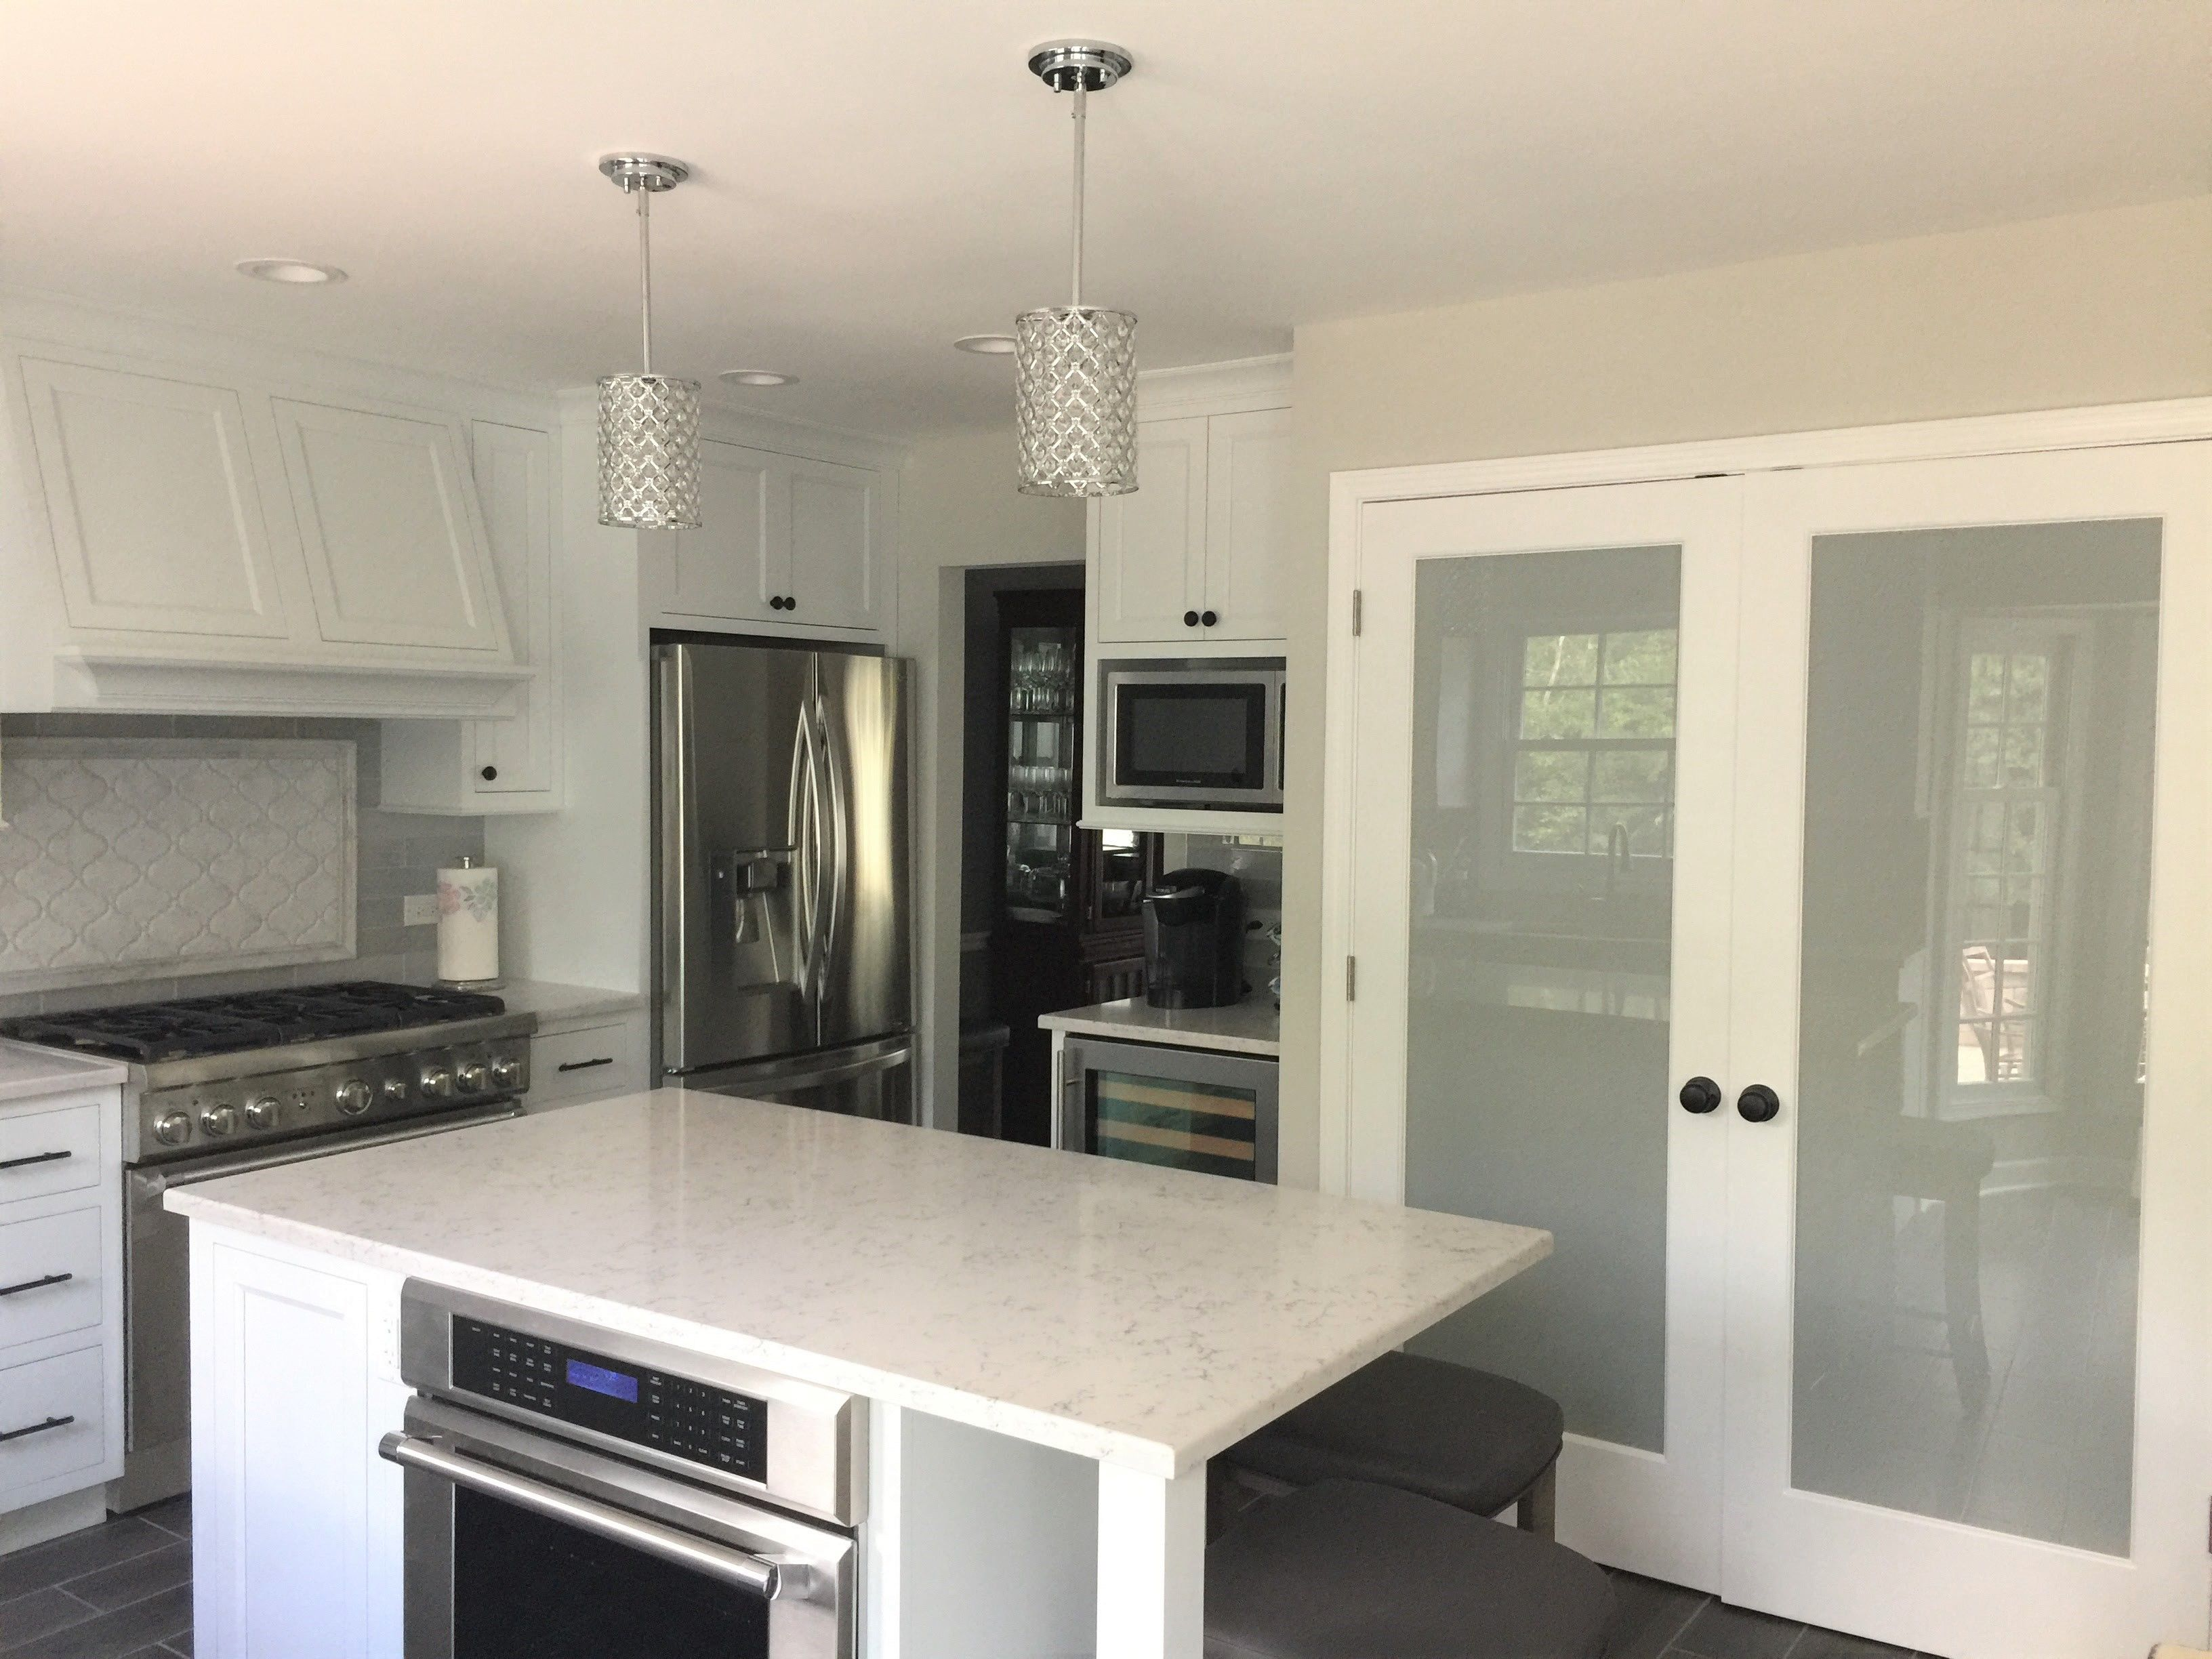 Smart Kitchen Designs Spacious Pantry Built In Appliances Kitchen Island With A Built In Oven Smart Kitchen Kitchen Appliances Kitchen Design